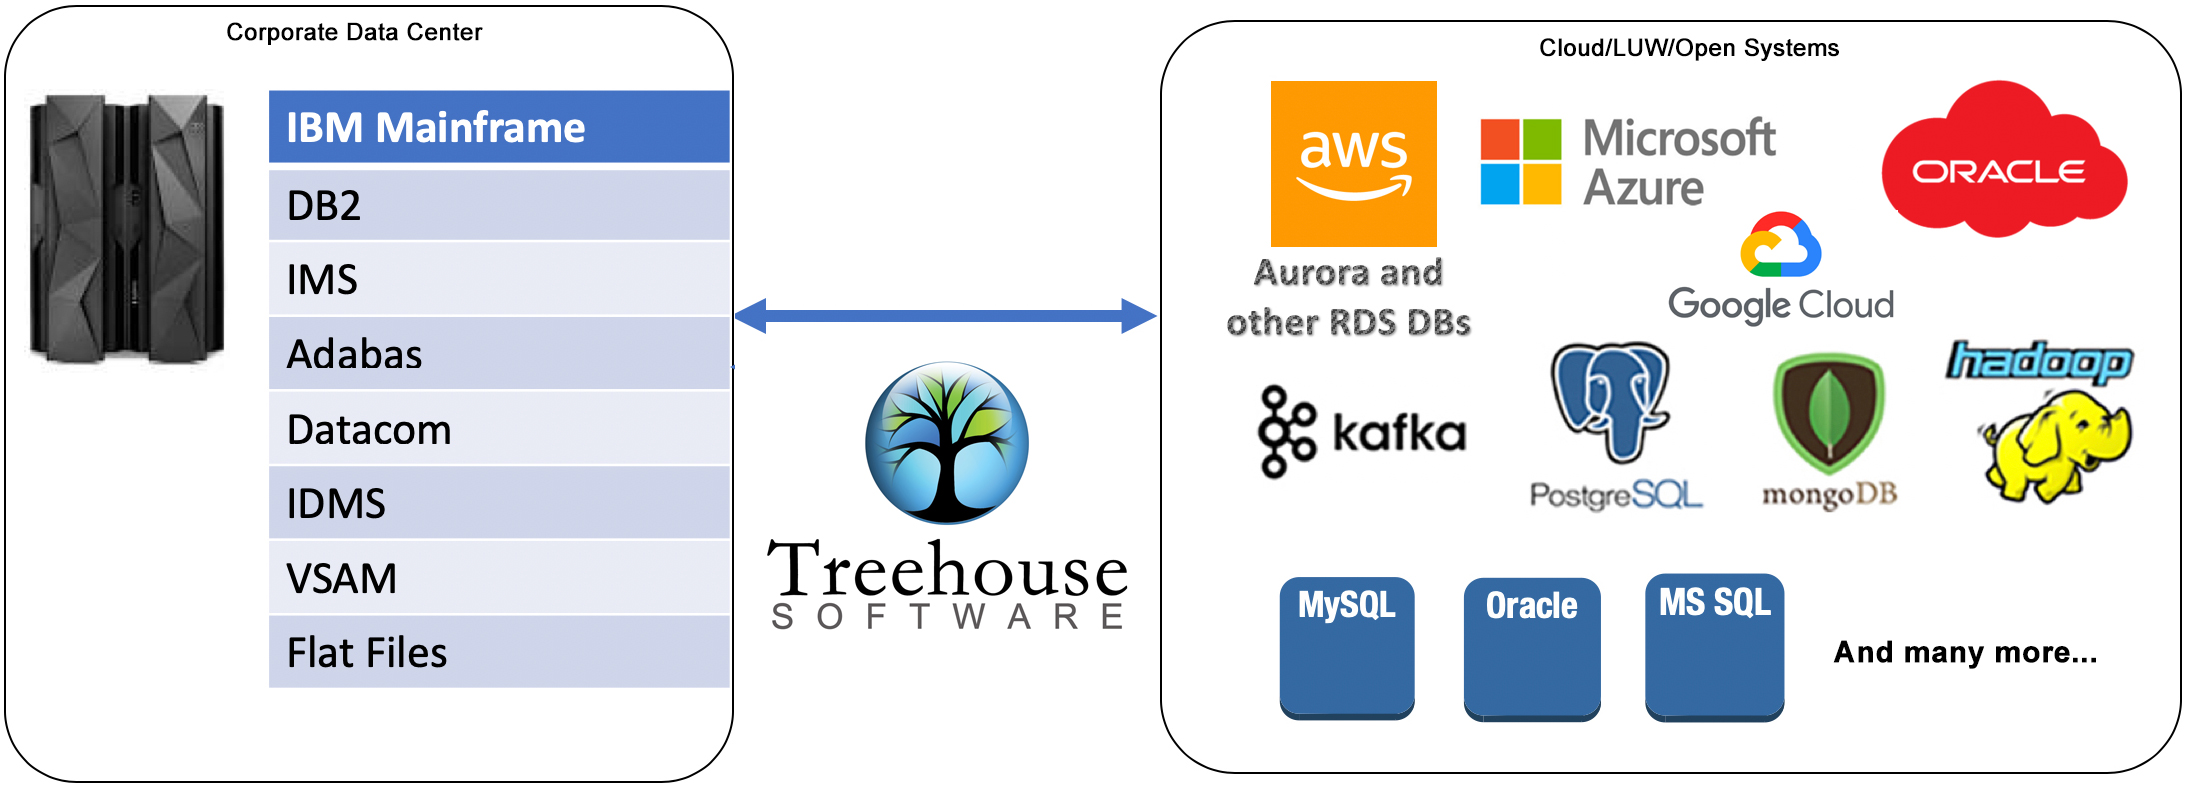 Treehouse_Products_Diagram_General_Cloud.jpg